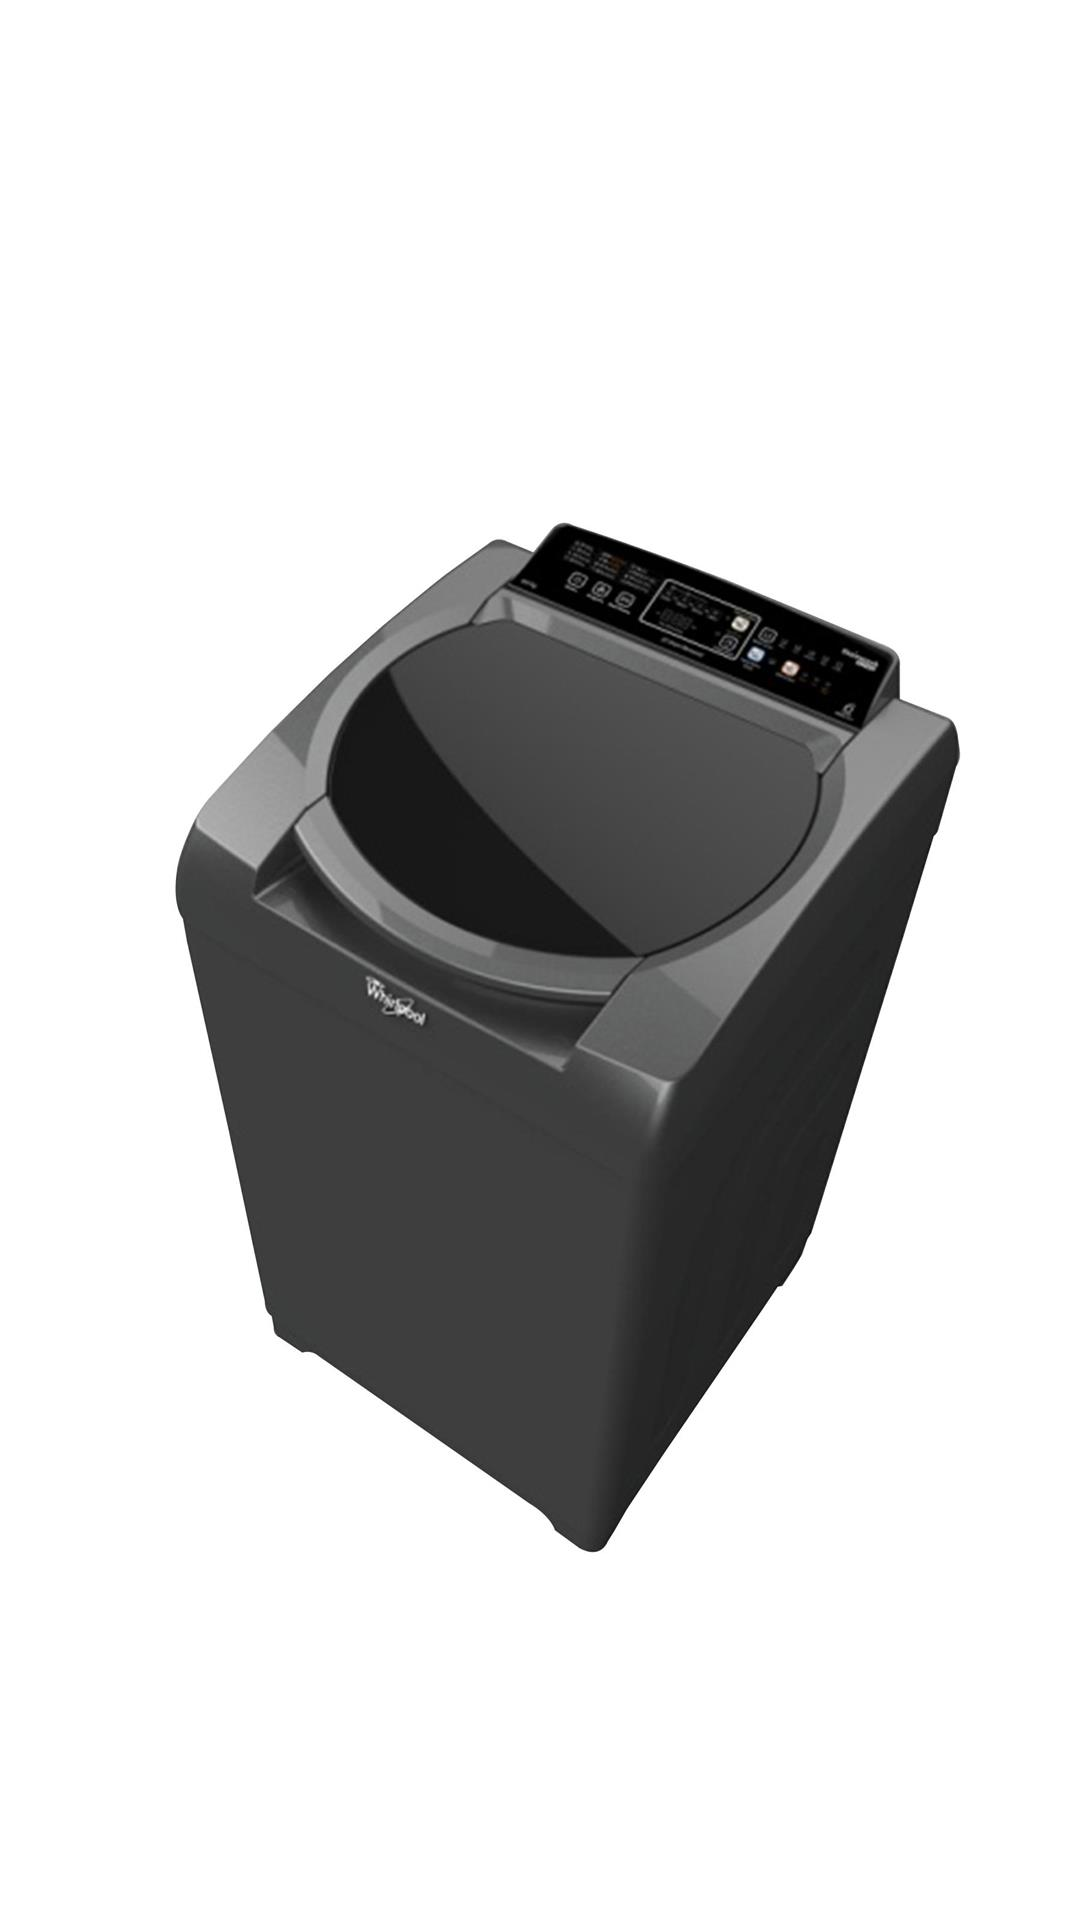 Whirlpool Stainwash Ultra Fully Automatic Top Loading 8 kg Washing Machine (Graphite)